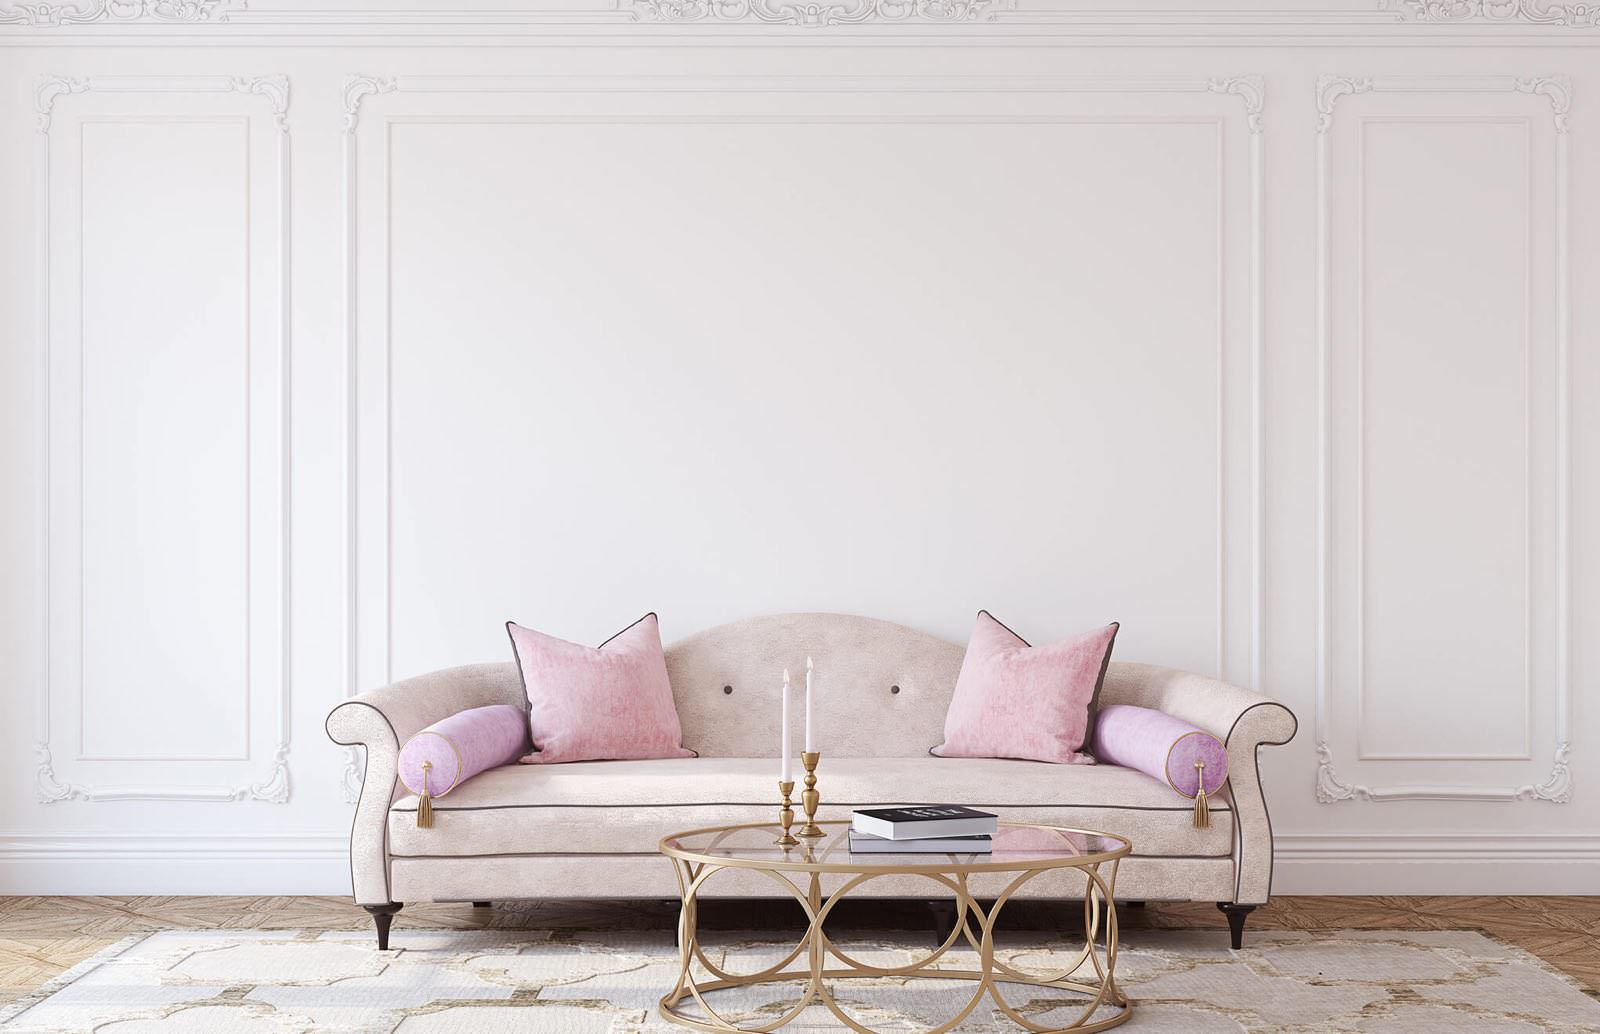 OuiPlease - OuiBlog French Style Apartment Decor ...